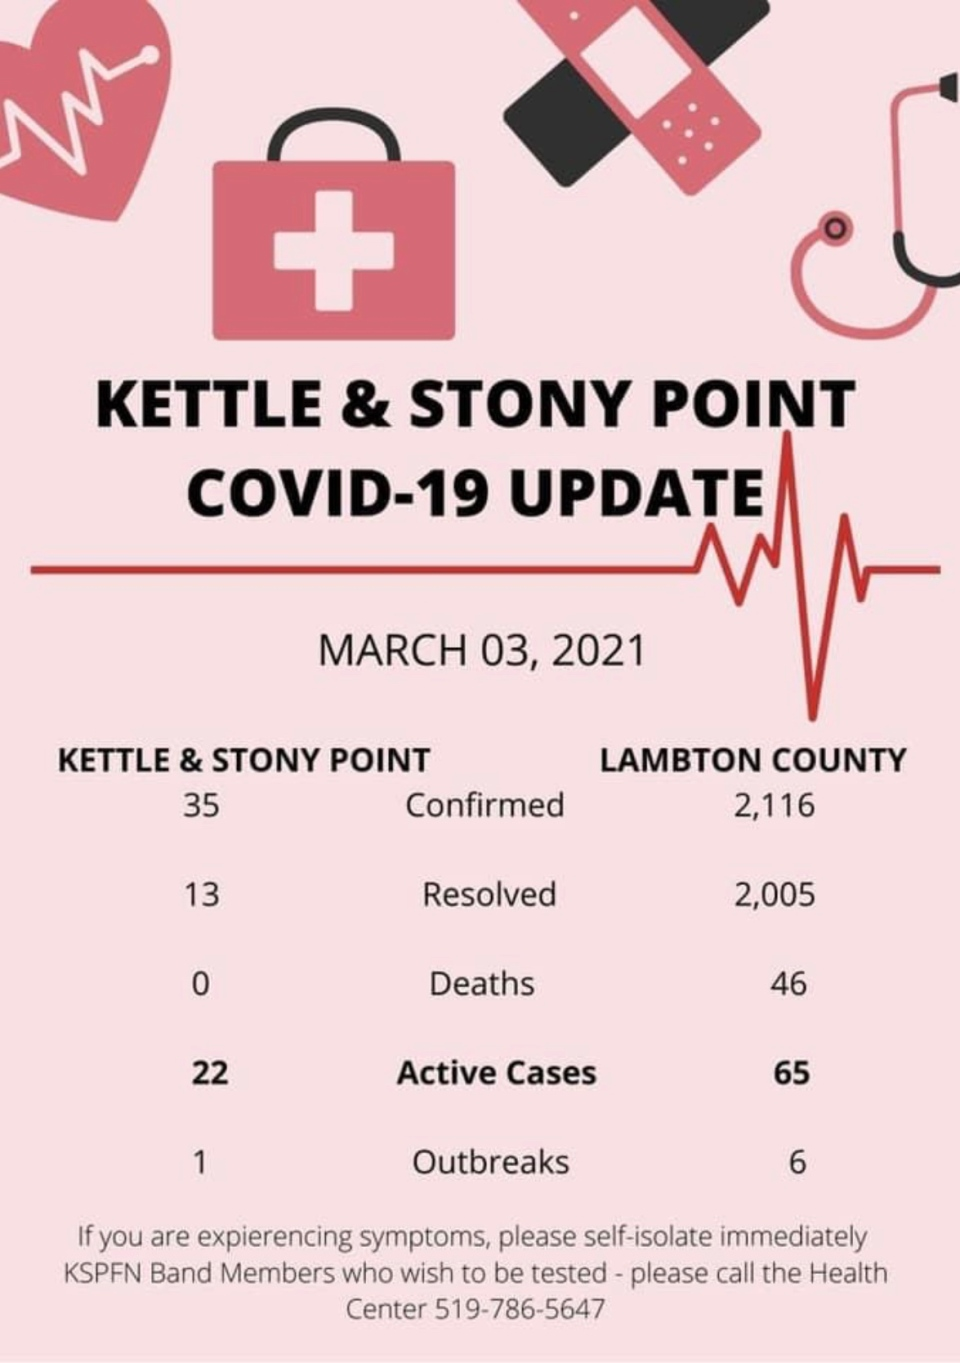 Kettle and Stony Point COVID-19 numbers on March 3, 2021.